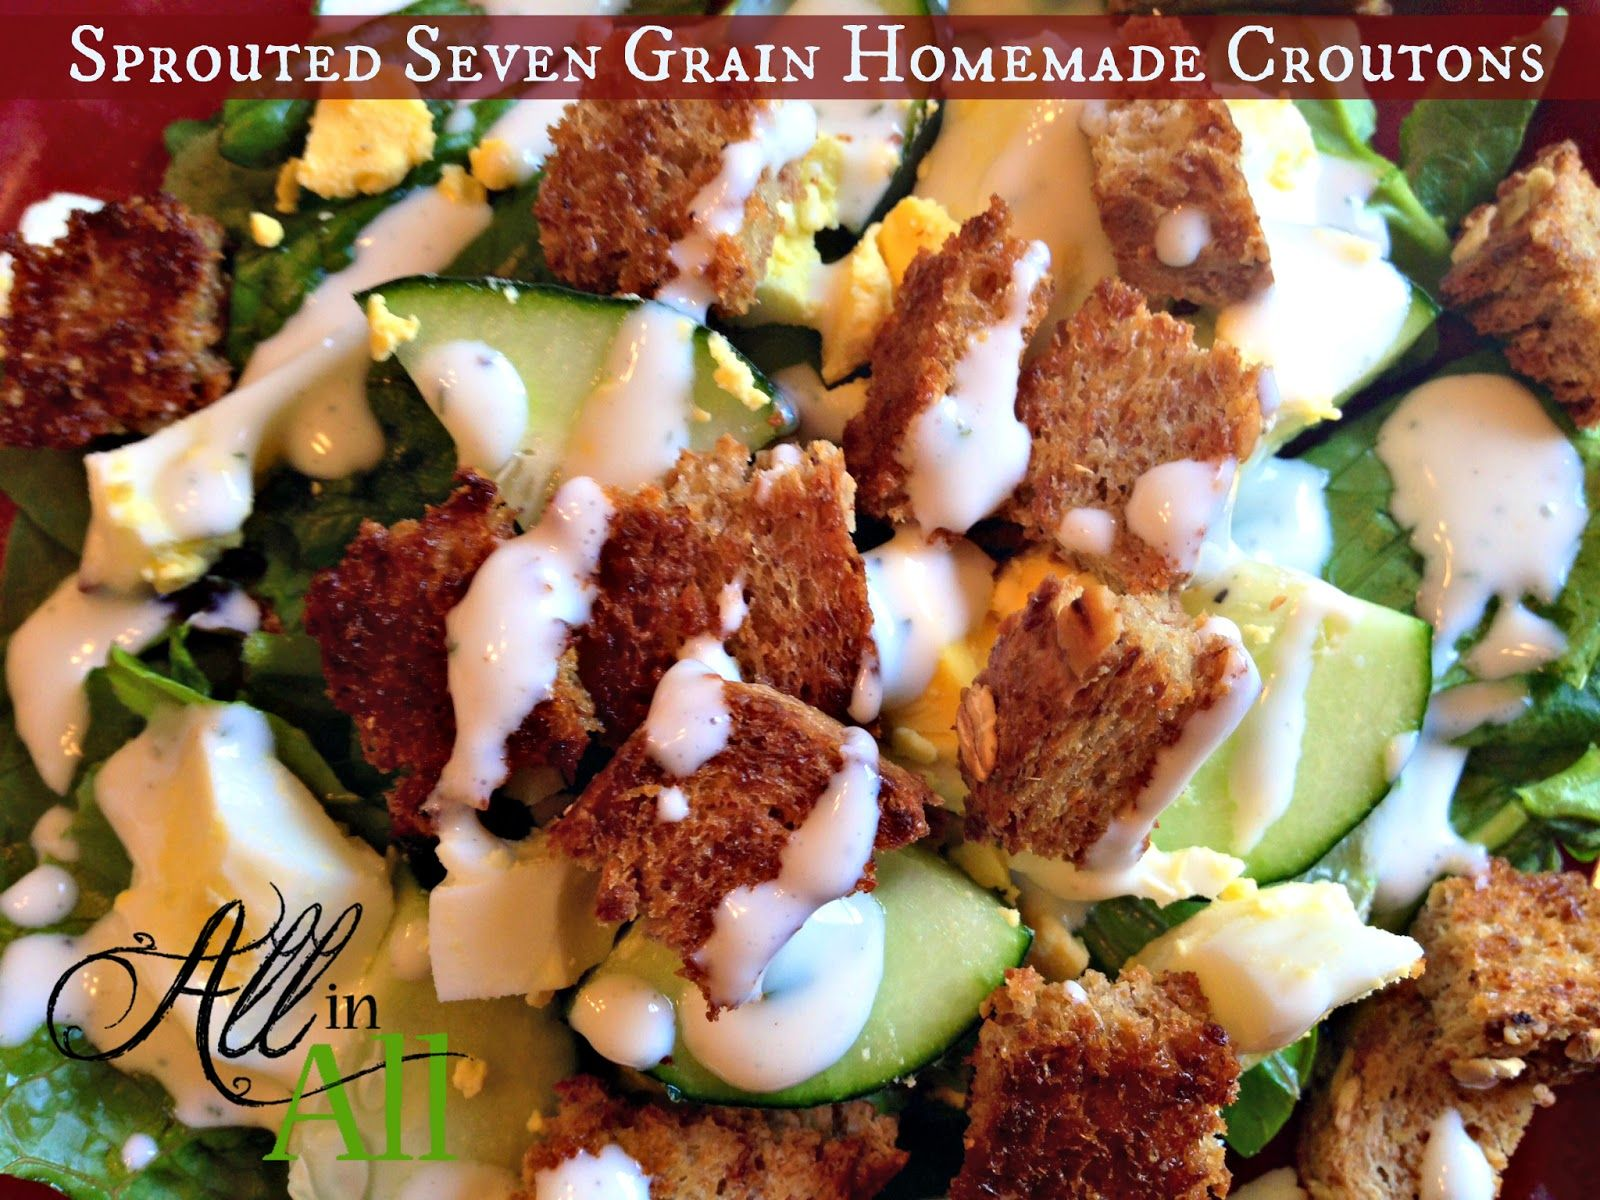 Sprouted Seven Grain Homemade Croutons